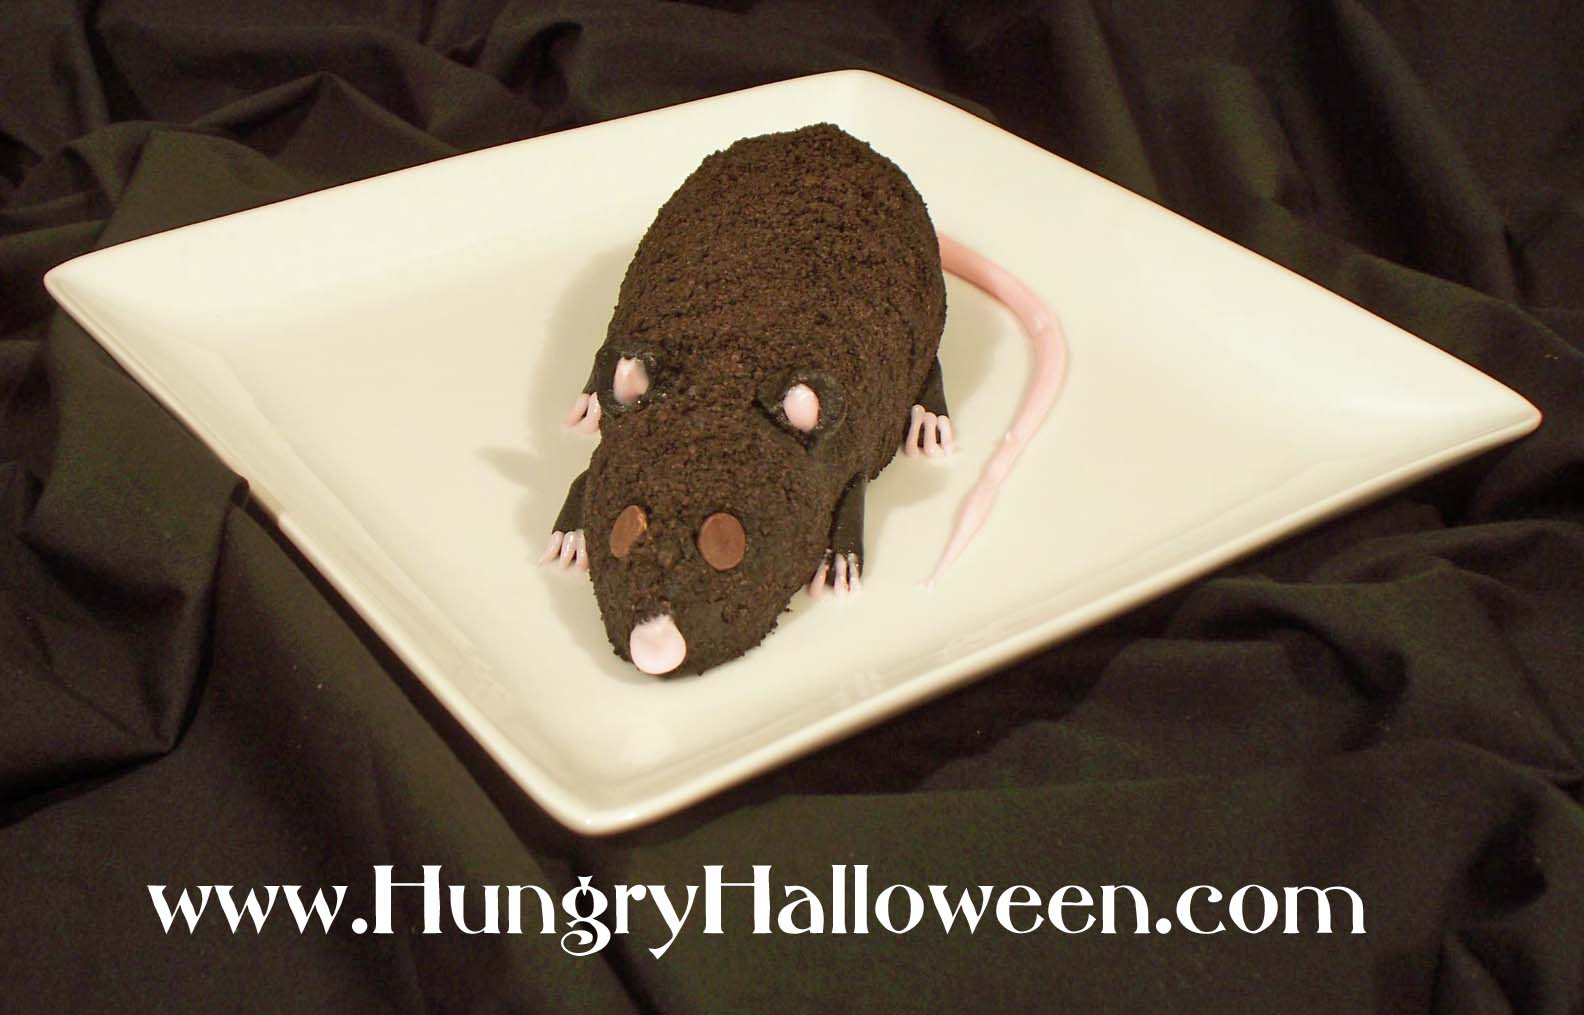 Halloween Cheese Ball Rat together with Directors cut movie party supplies in addition Abandon Mint A Garnishing Guide as well Fiesta Cine O Fiesta Hollywood Hollywood Party further Theme Princess Frog. on oscar party dessert ideas